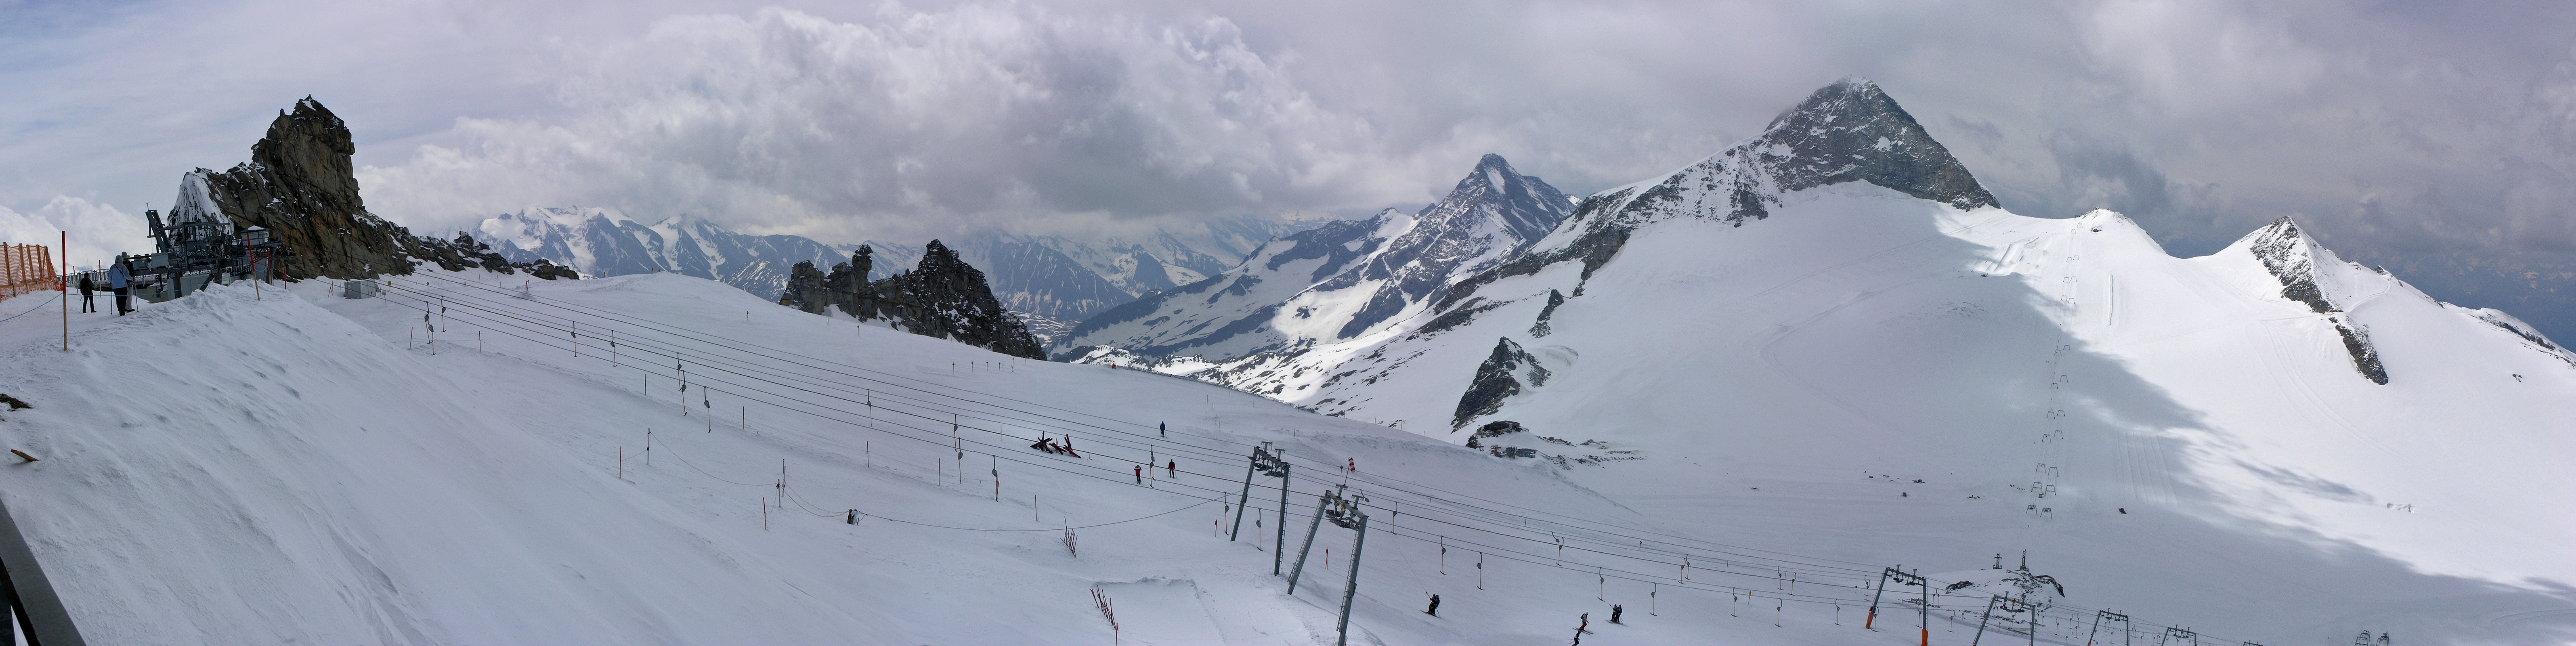 Hintertux top of chairlift view